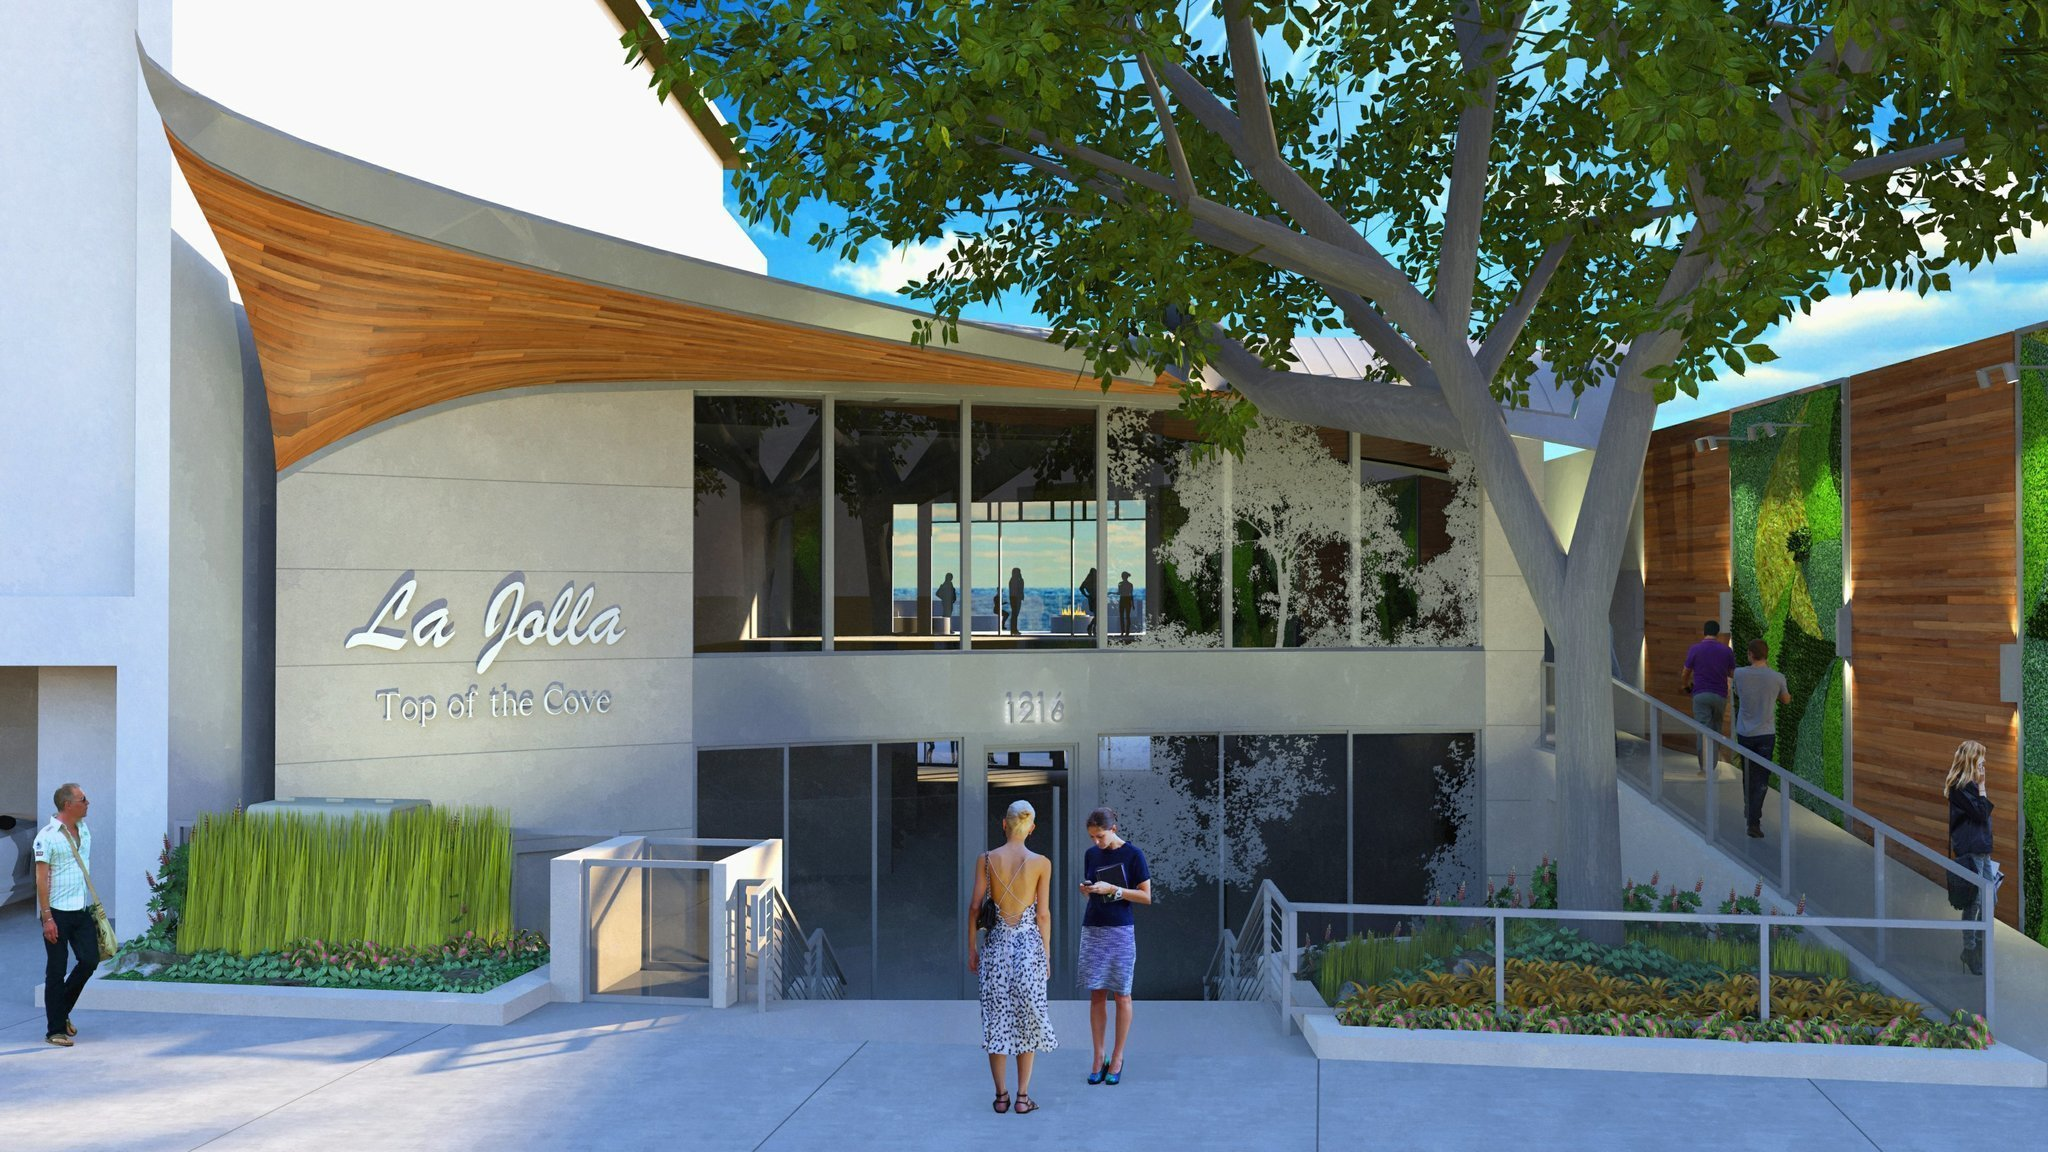 Top of the cove will be empty no more the san diego for Fish restaurant la jolla